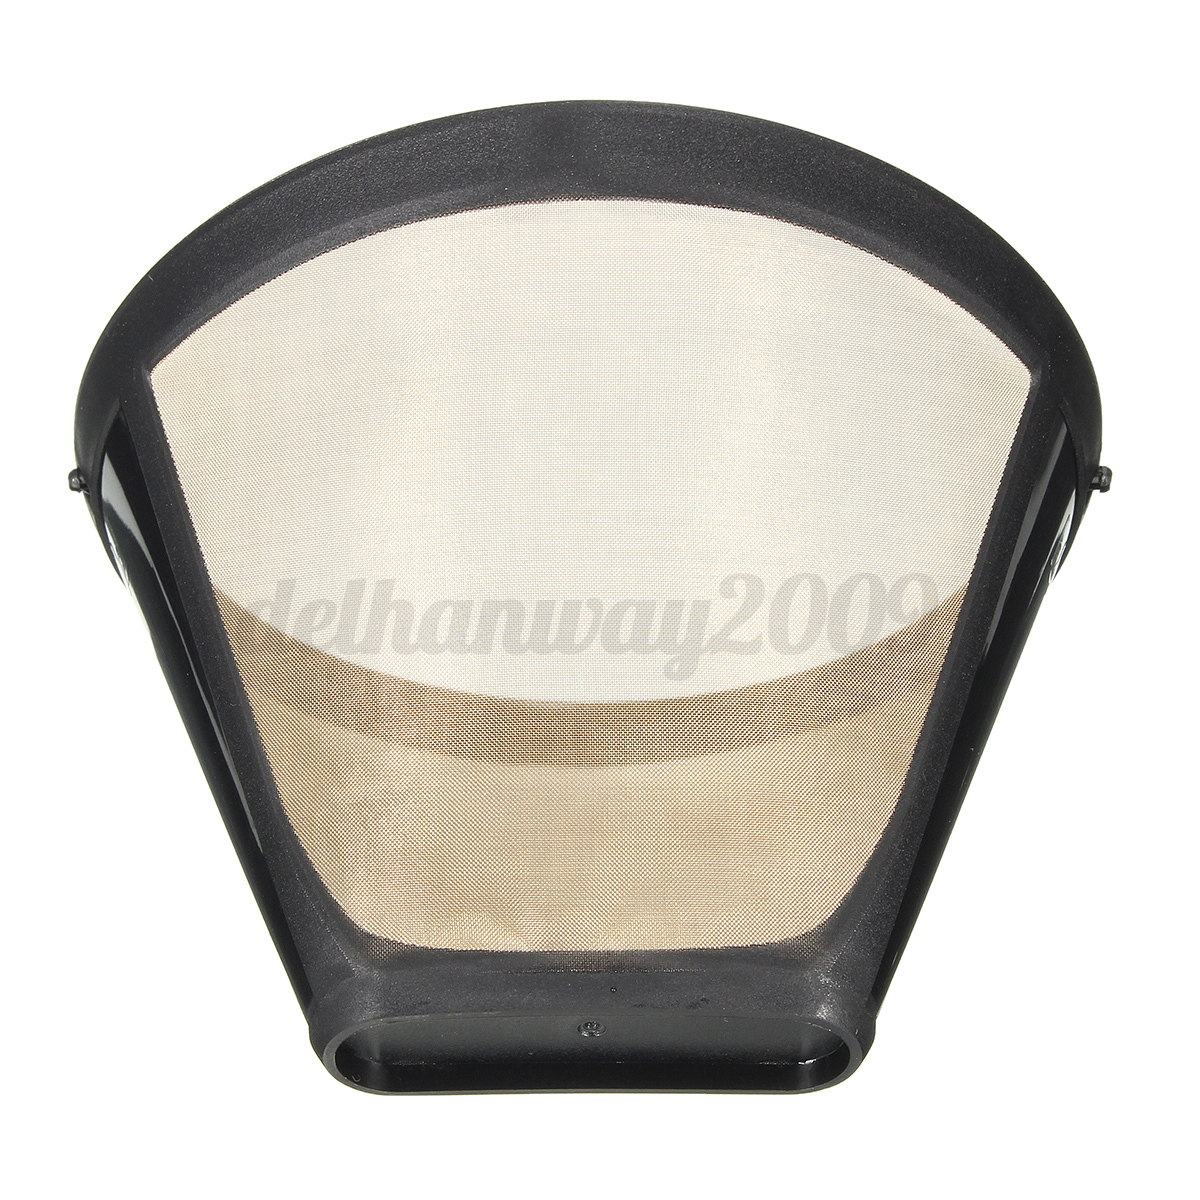 Coffee Makers That Use Cone Filters : Permanent Reusable #4 Cone-Style Coffee Maker Filter Stainless Mesh Basket New eBay